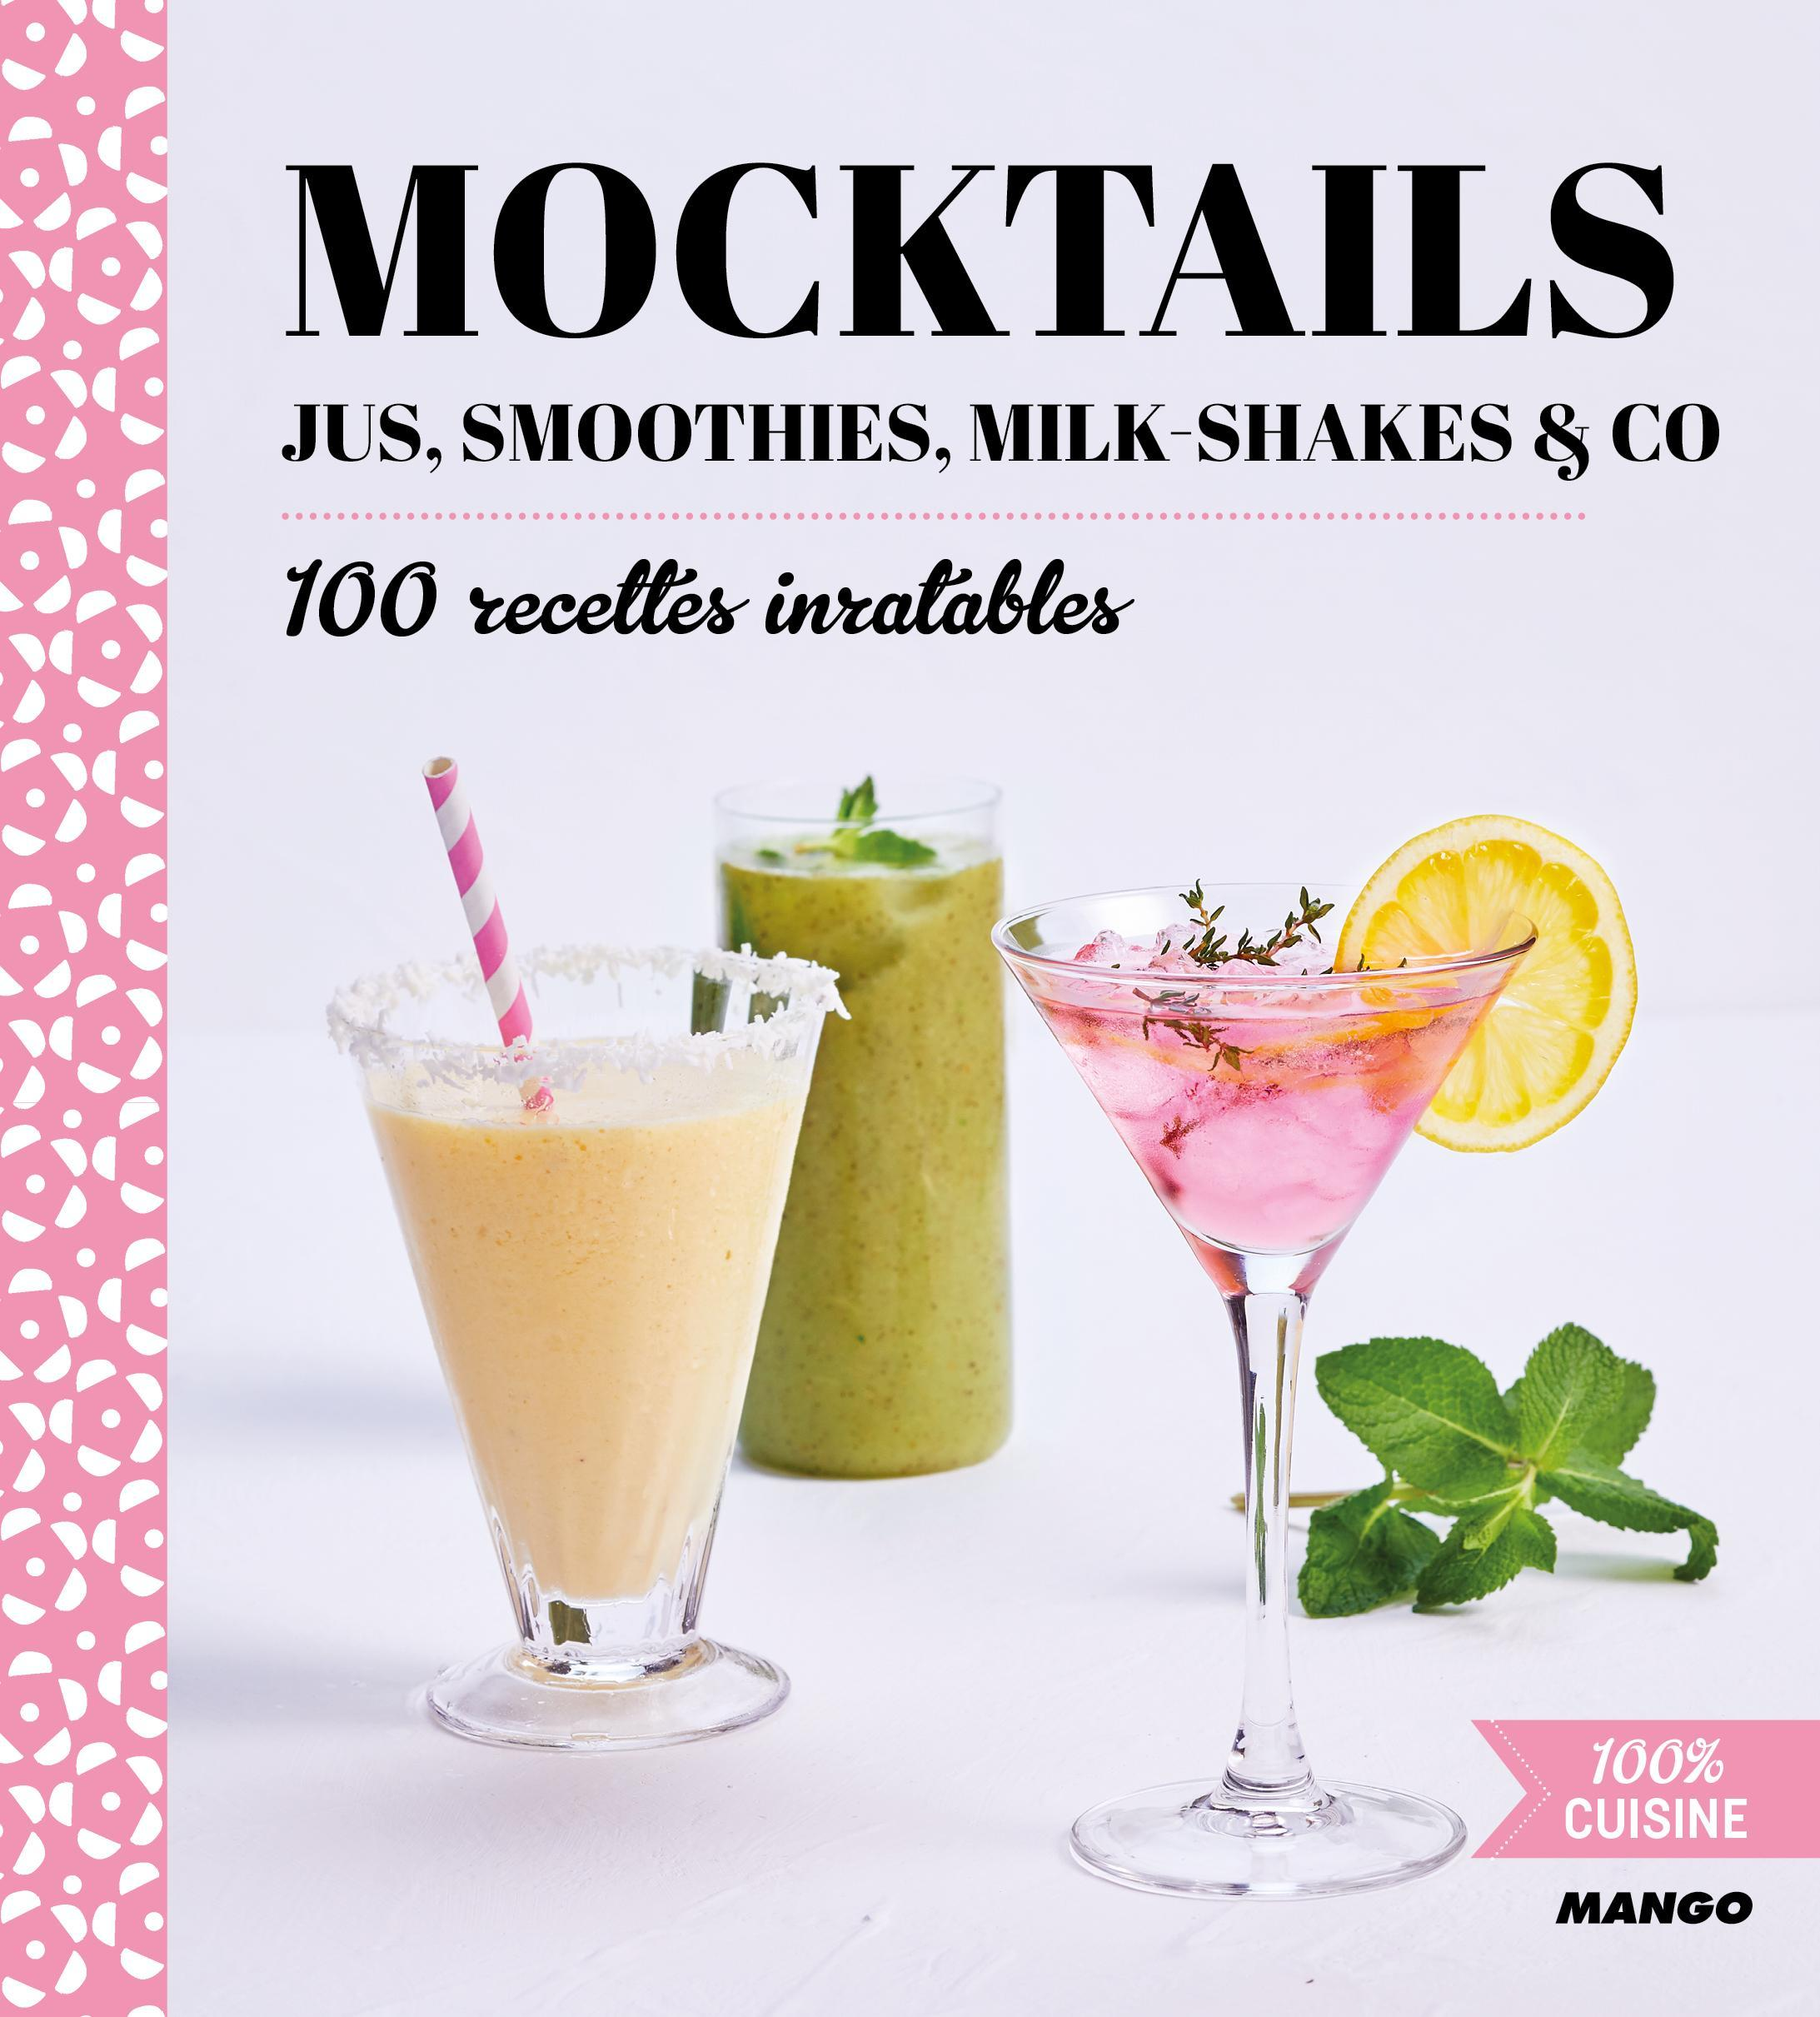 MOCKTAILS, JUS, SMOOTHIES, MILK-SHAKES & CO